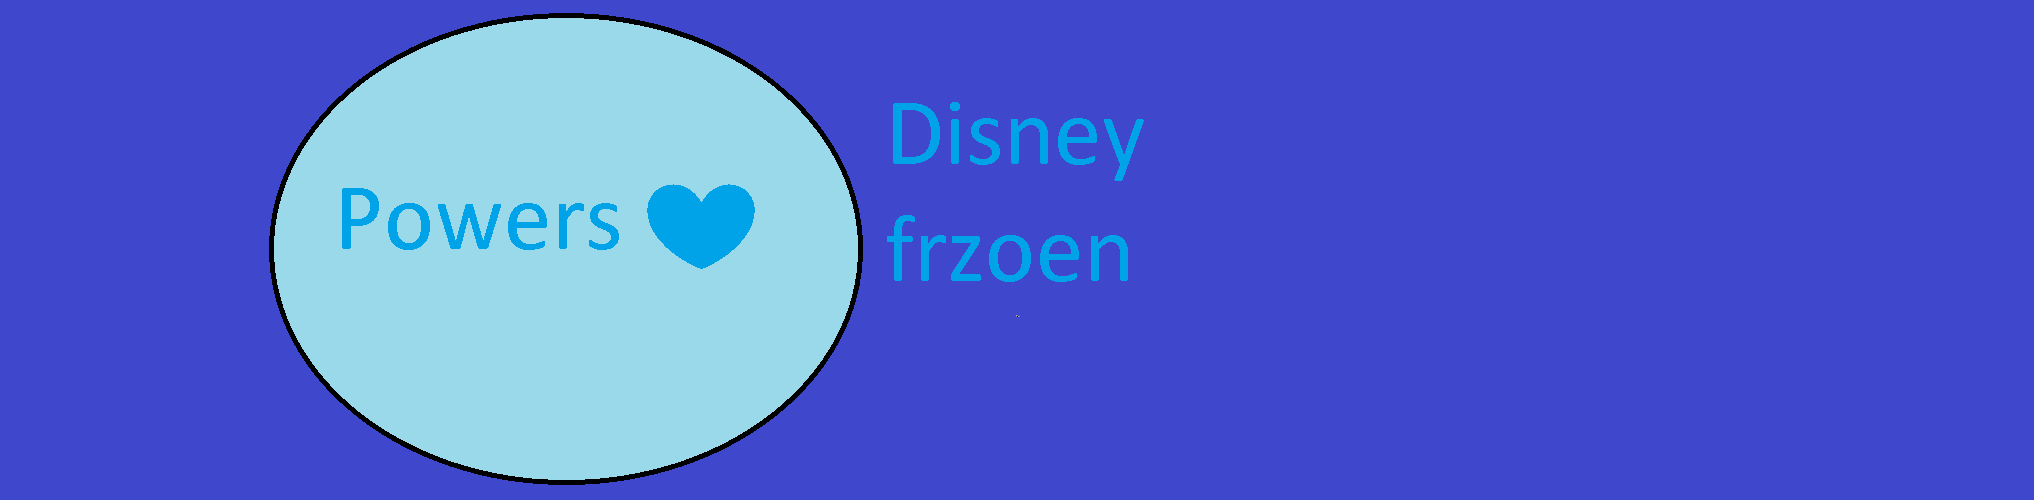 what disney frozen c... are you?